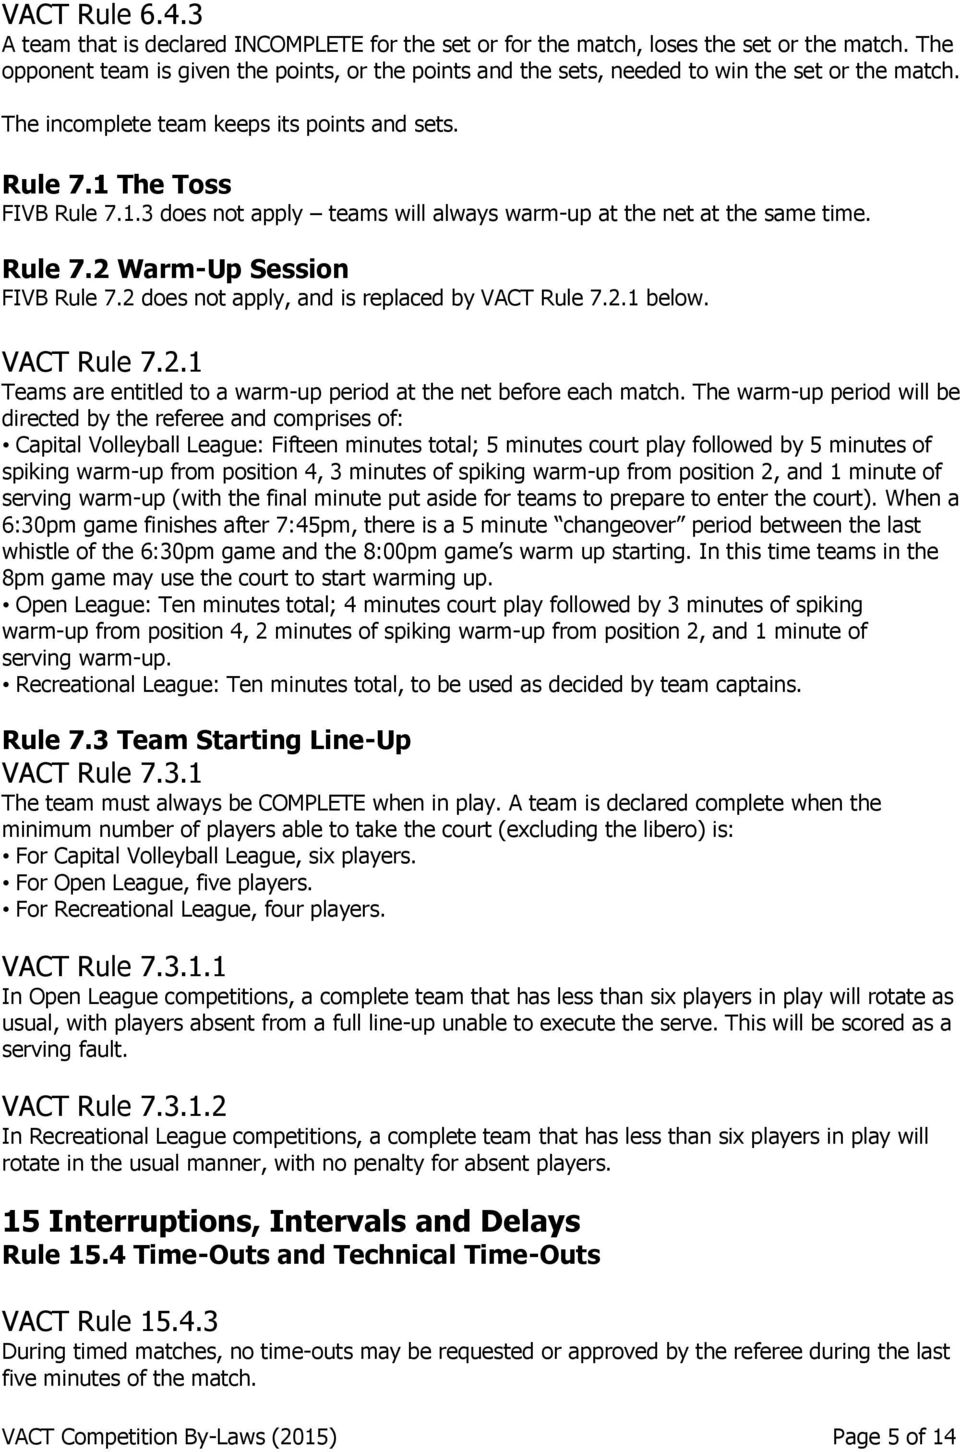 The Toss FIVB Rule 7.1.3 does not apply teams will always warm-up at the net at the same time. Rule 7.2 Warm-Up Session FIVB Rule 7.2 does not apply, and is replaced by VACT Rule 7.2.1 below.